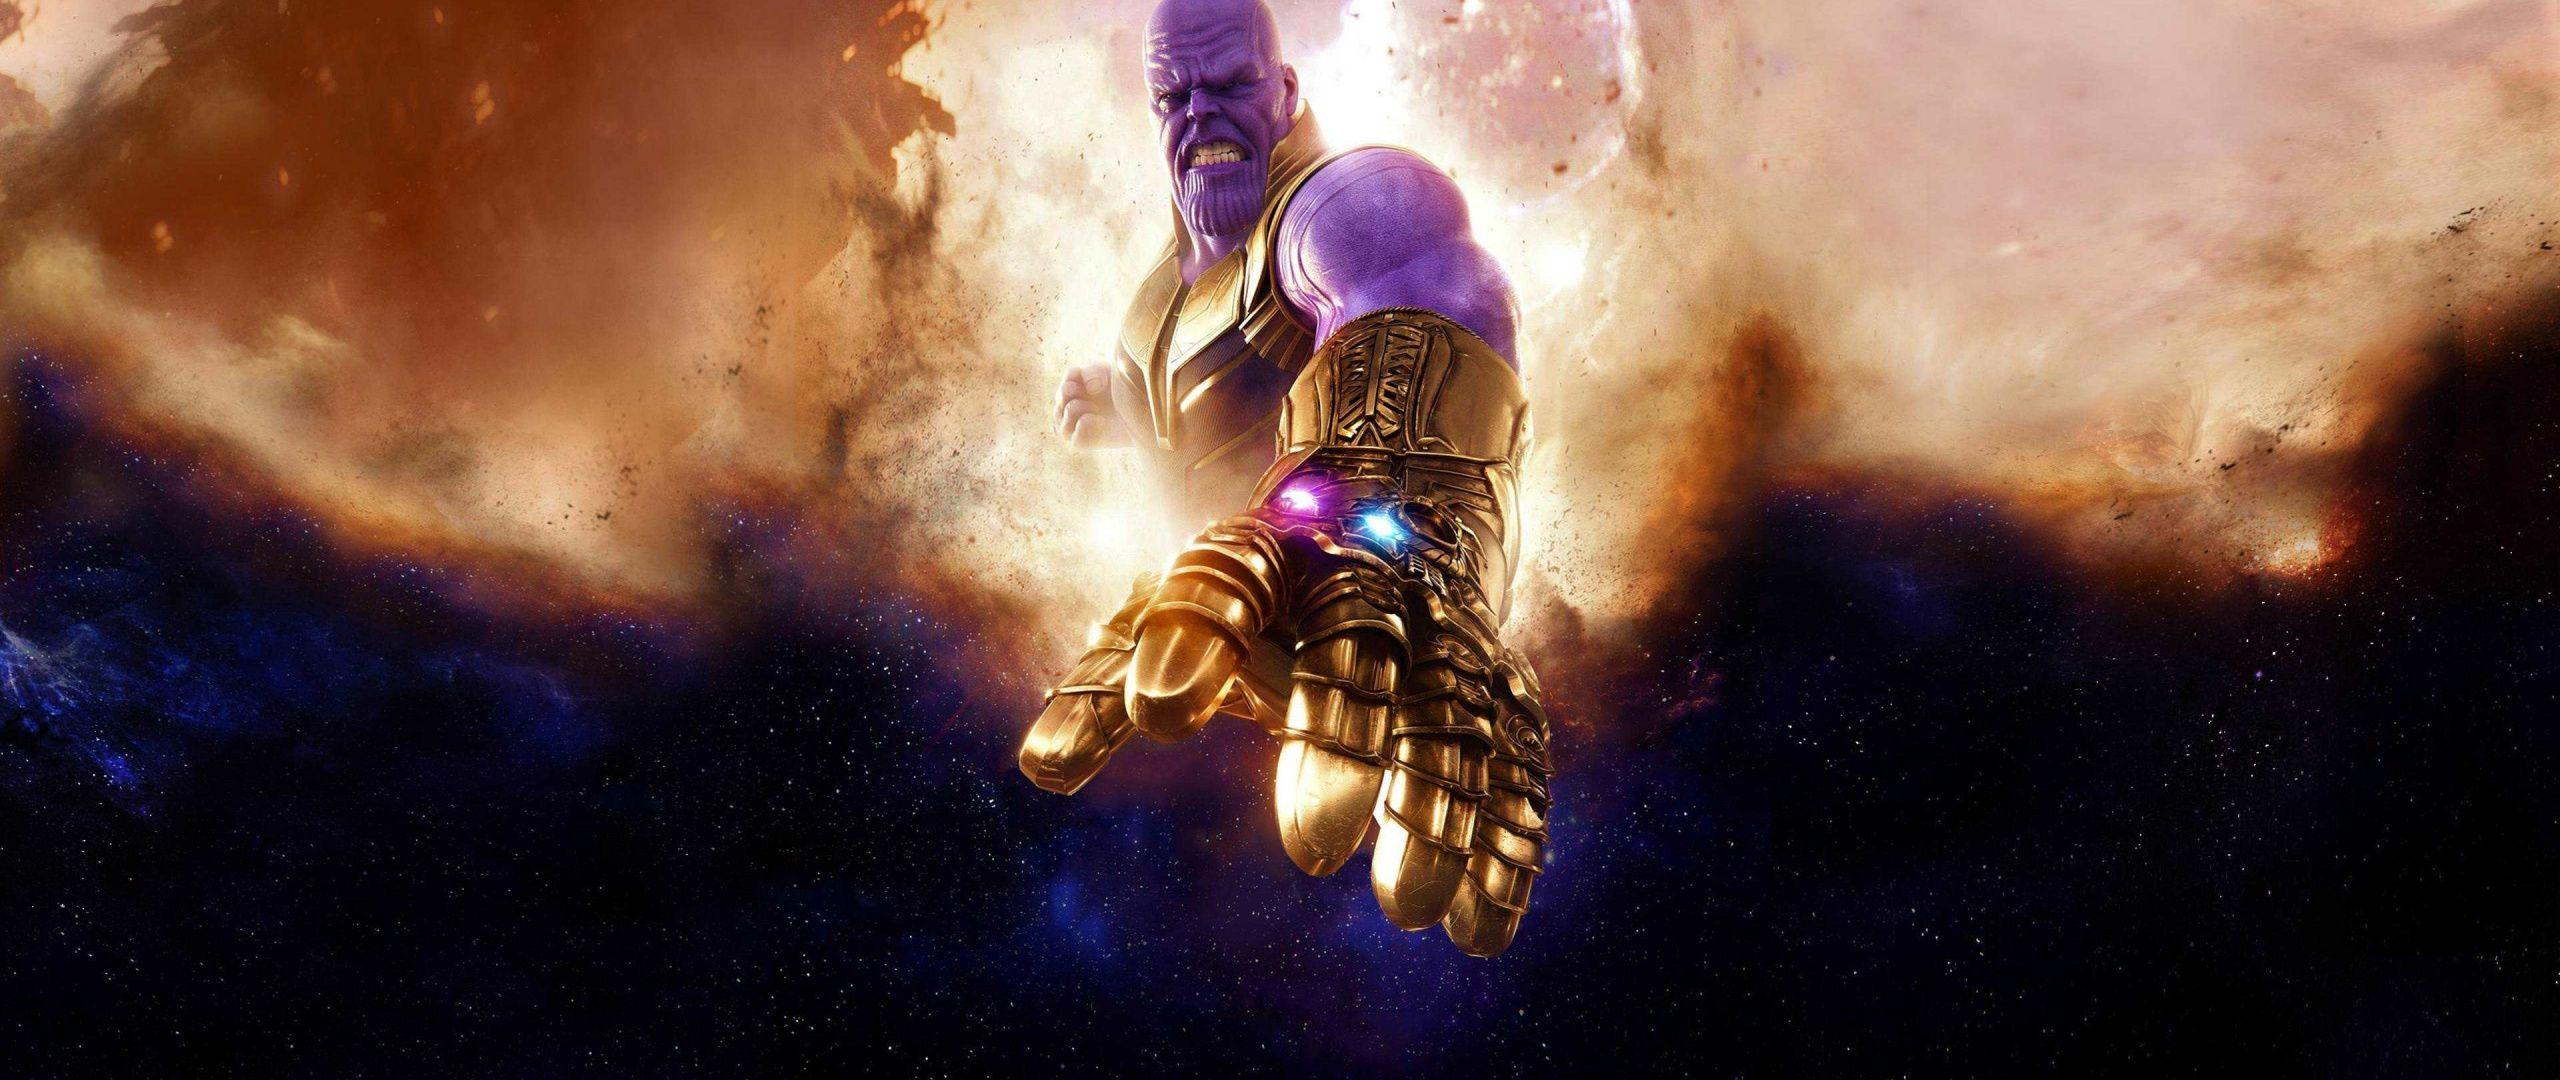 Download 2560x1080 wallpaper thanos, clouds, avengers: infinity war .